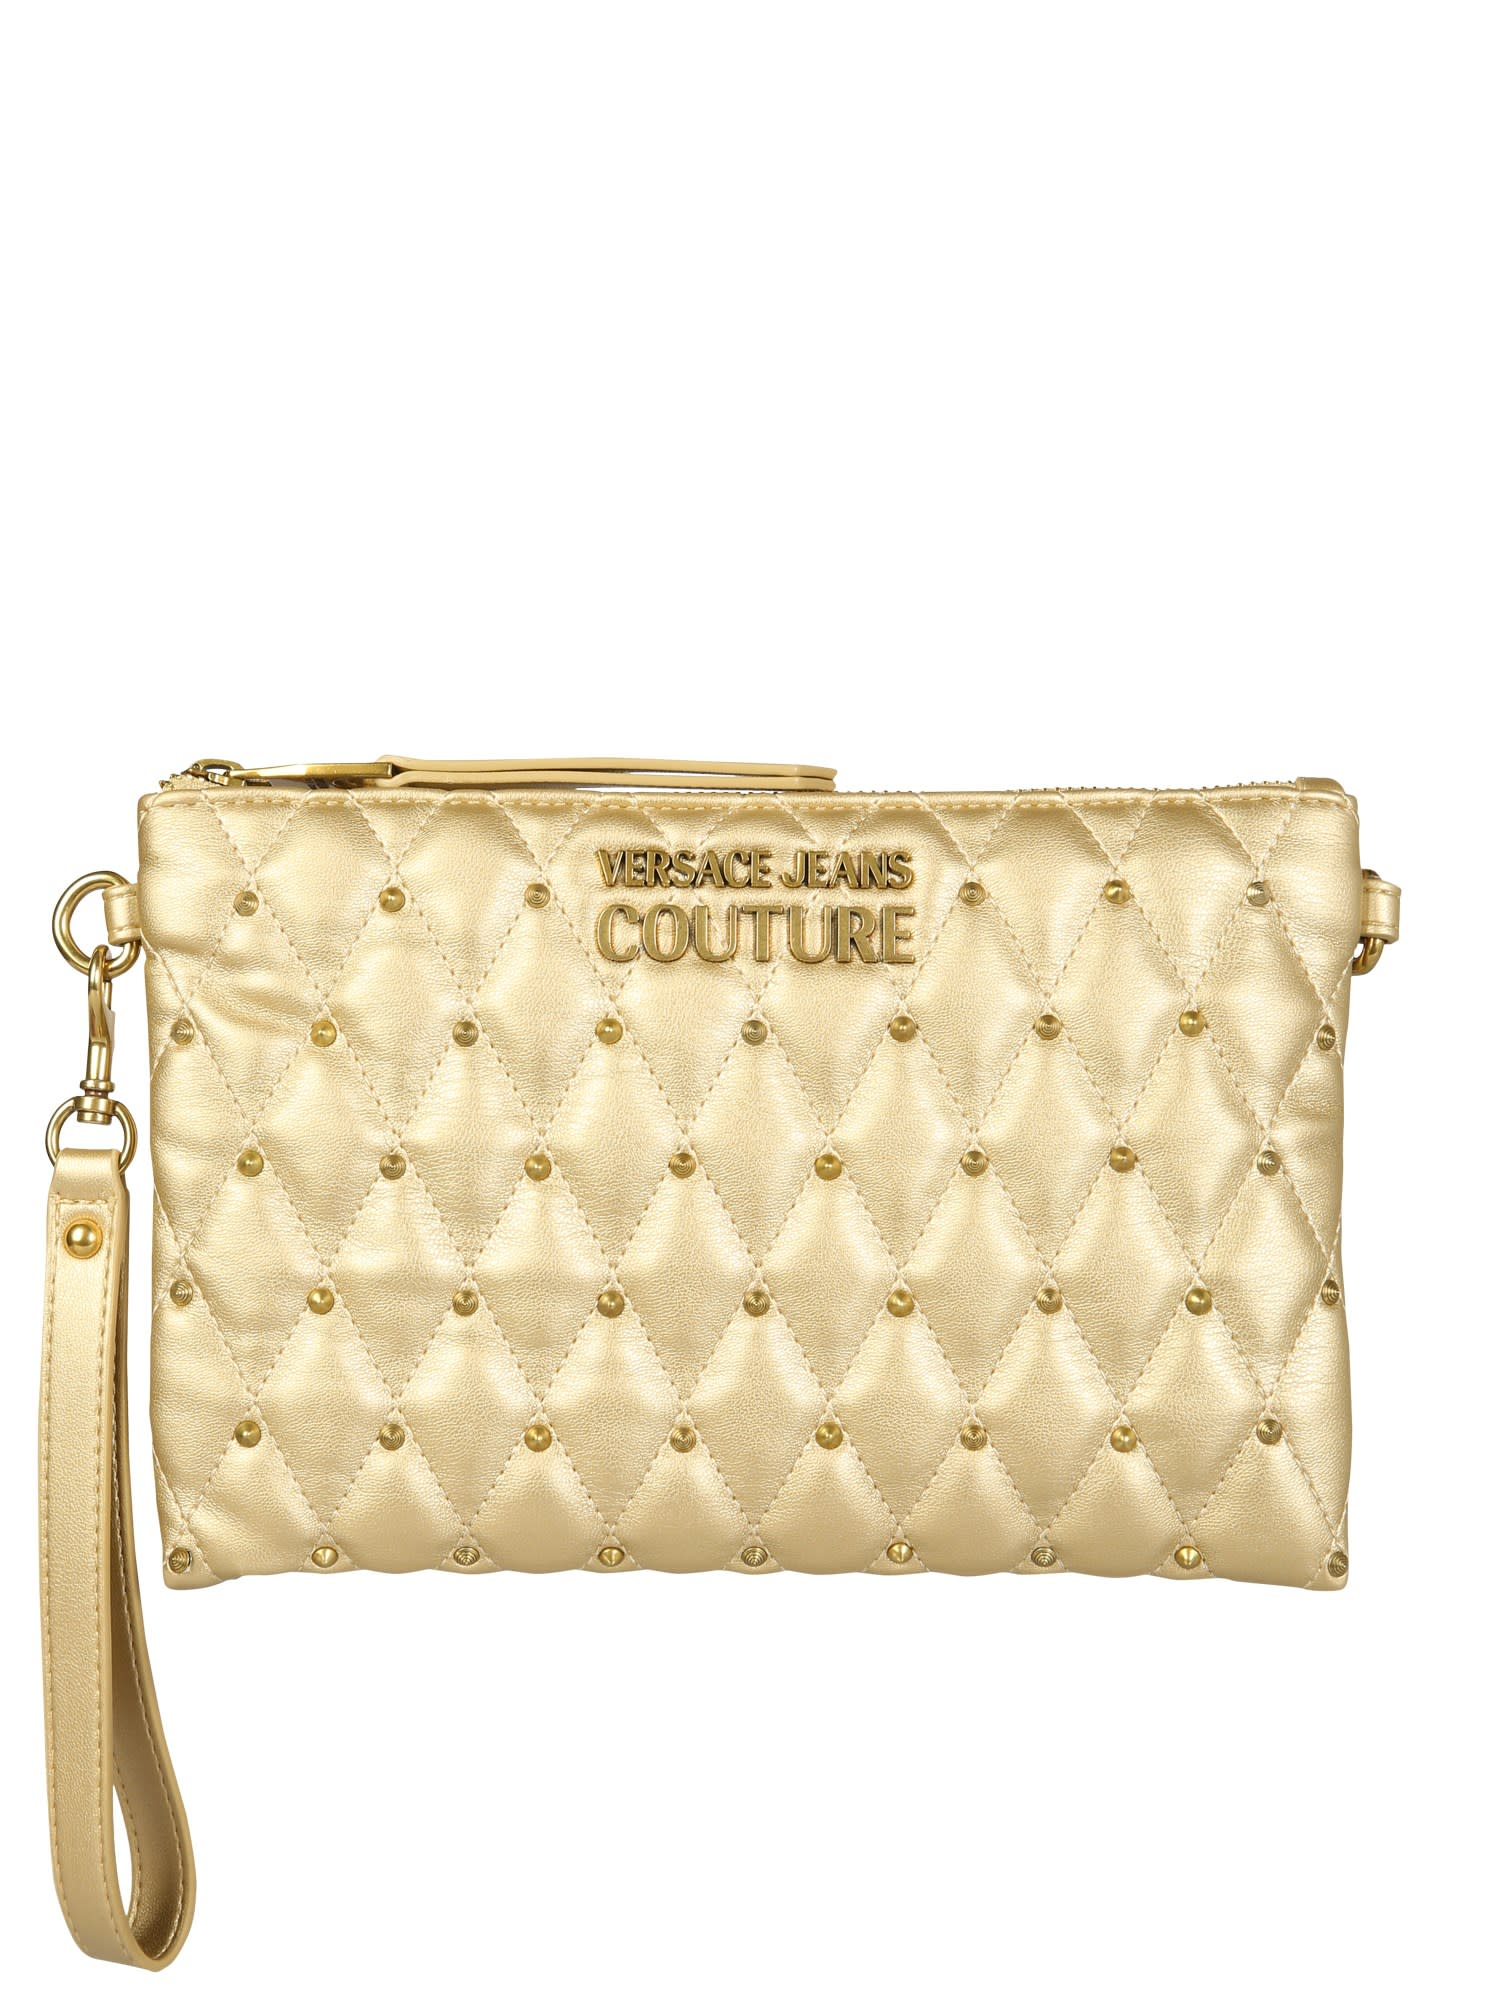 Versace Jeans Couture ECONAPPA POUCH